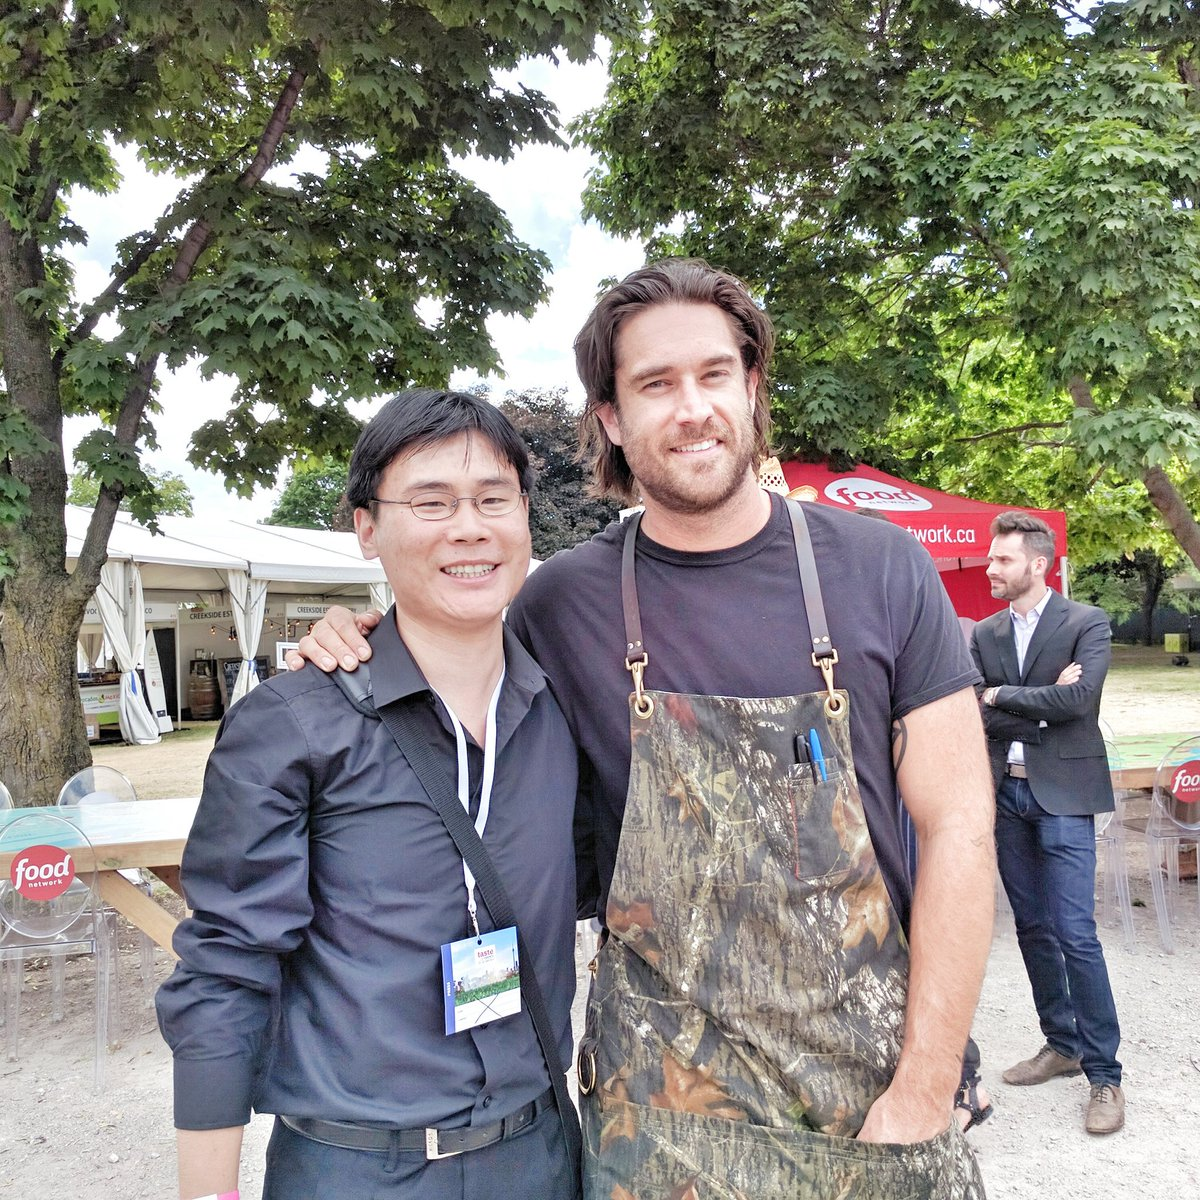 Chef Michael Hunter with Travelling Foodie at Taste of Toronto Festival